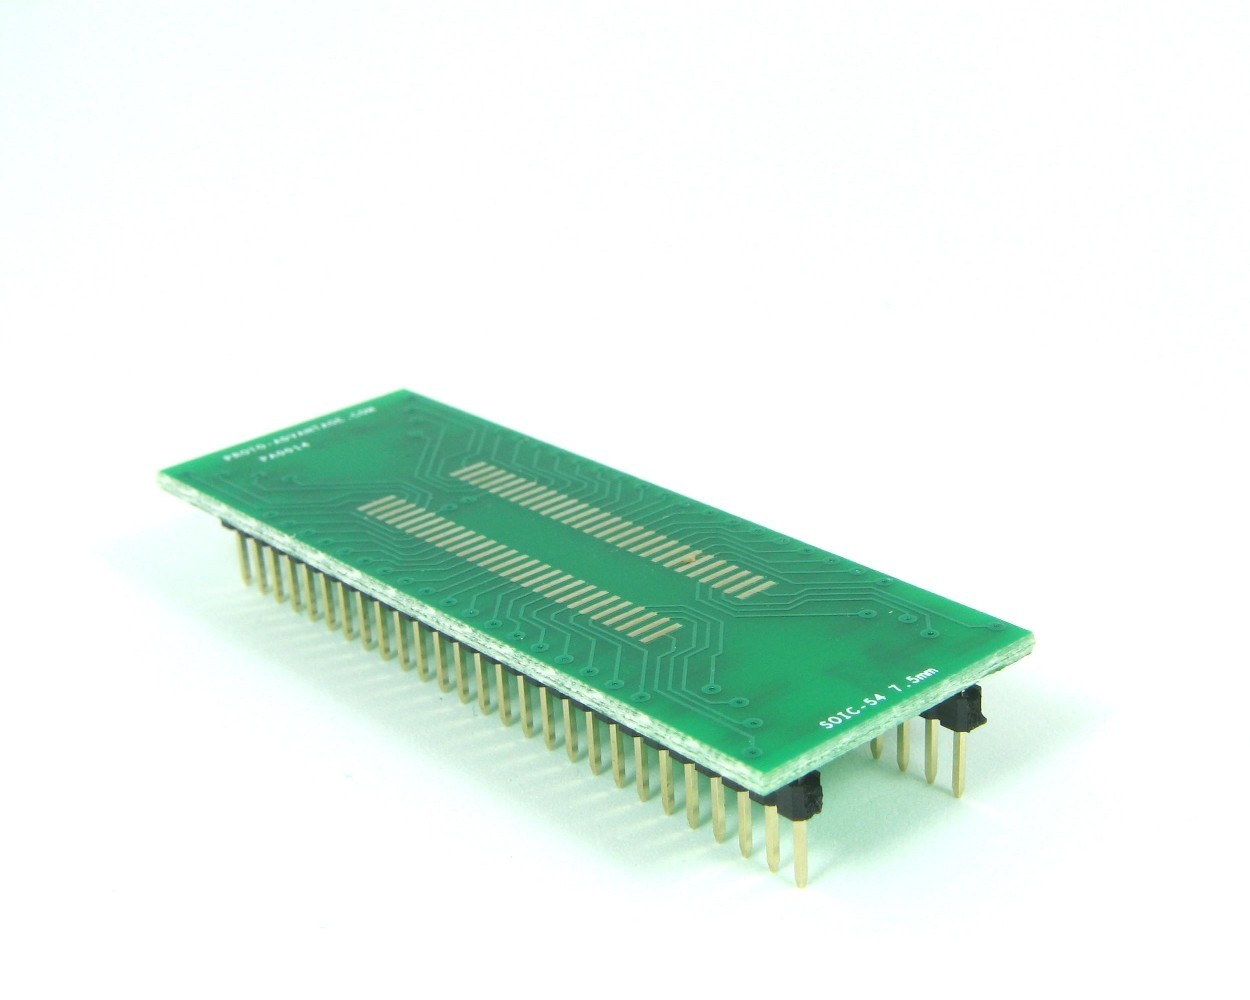 SOIC-54 to DIP-54 SMT Adapter (1.27 mm pitch, 300 mil body)